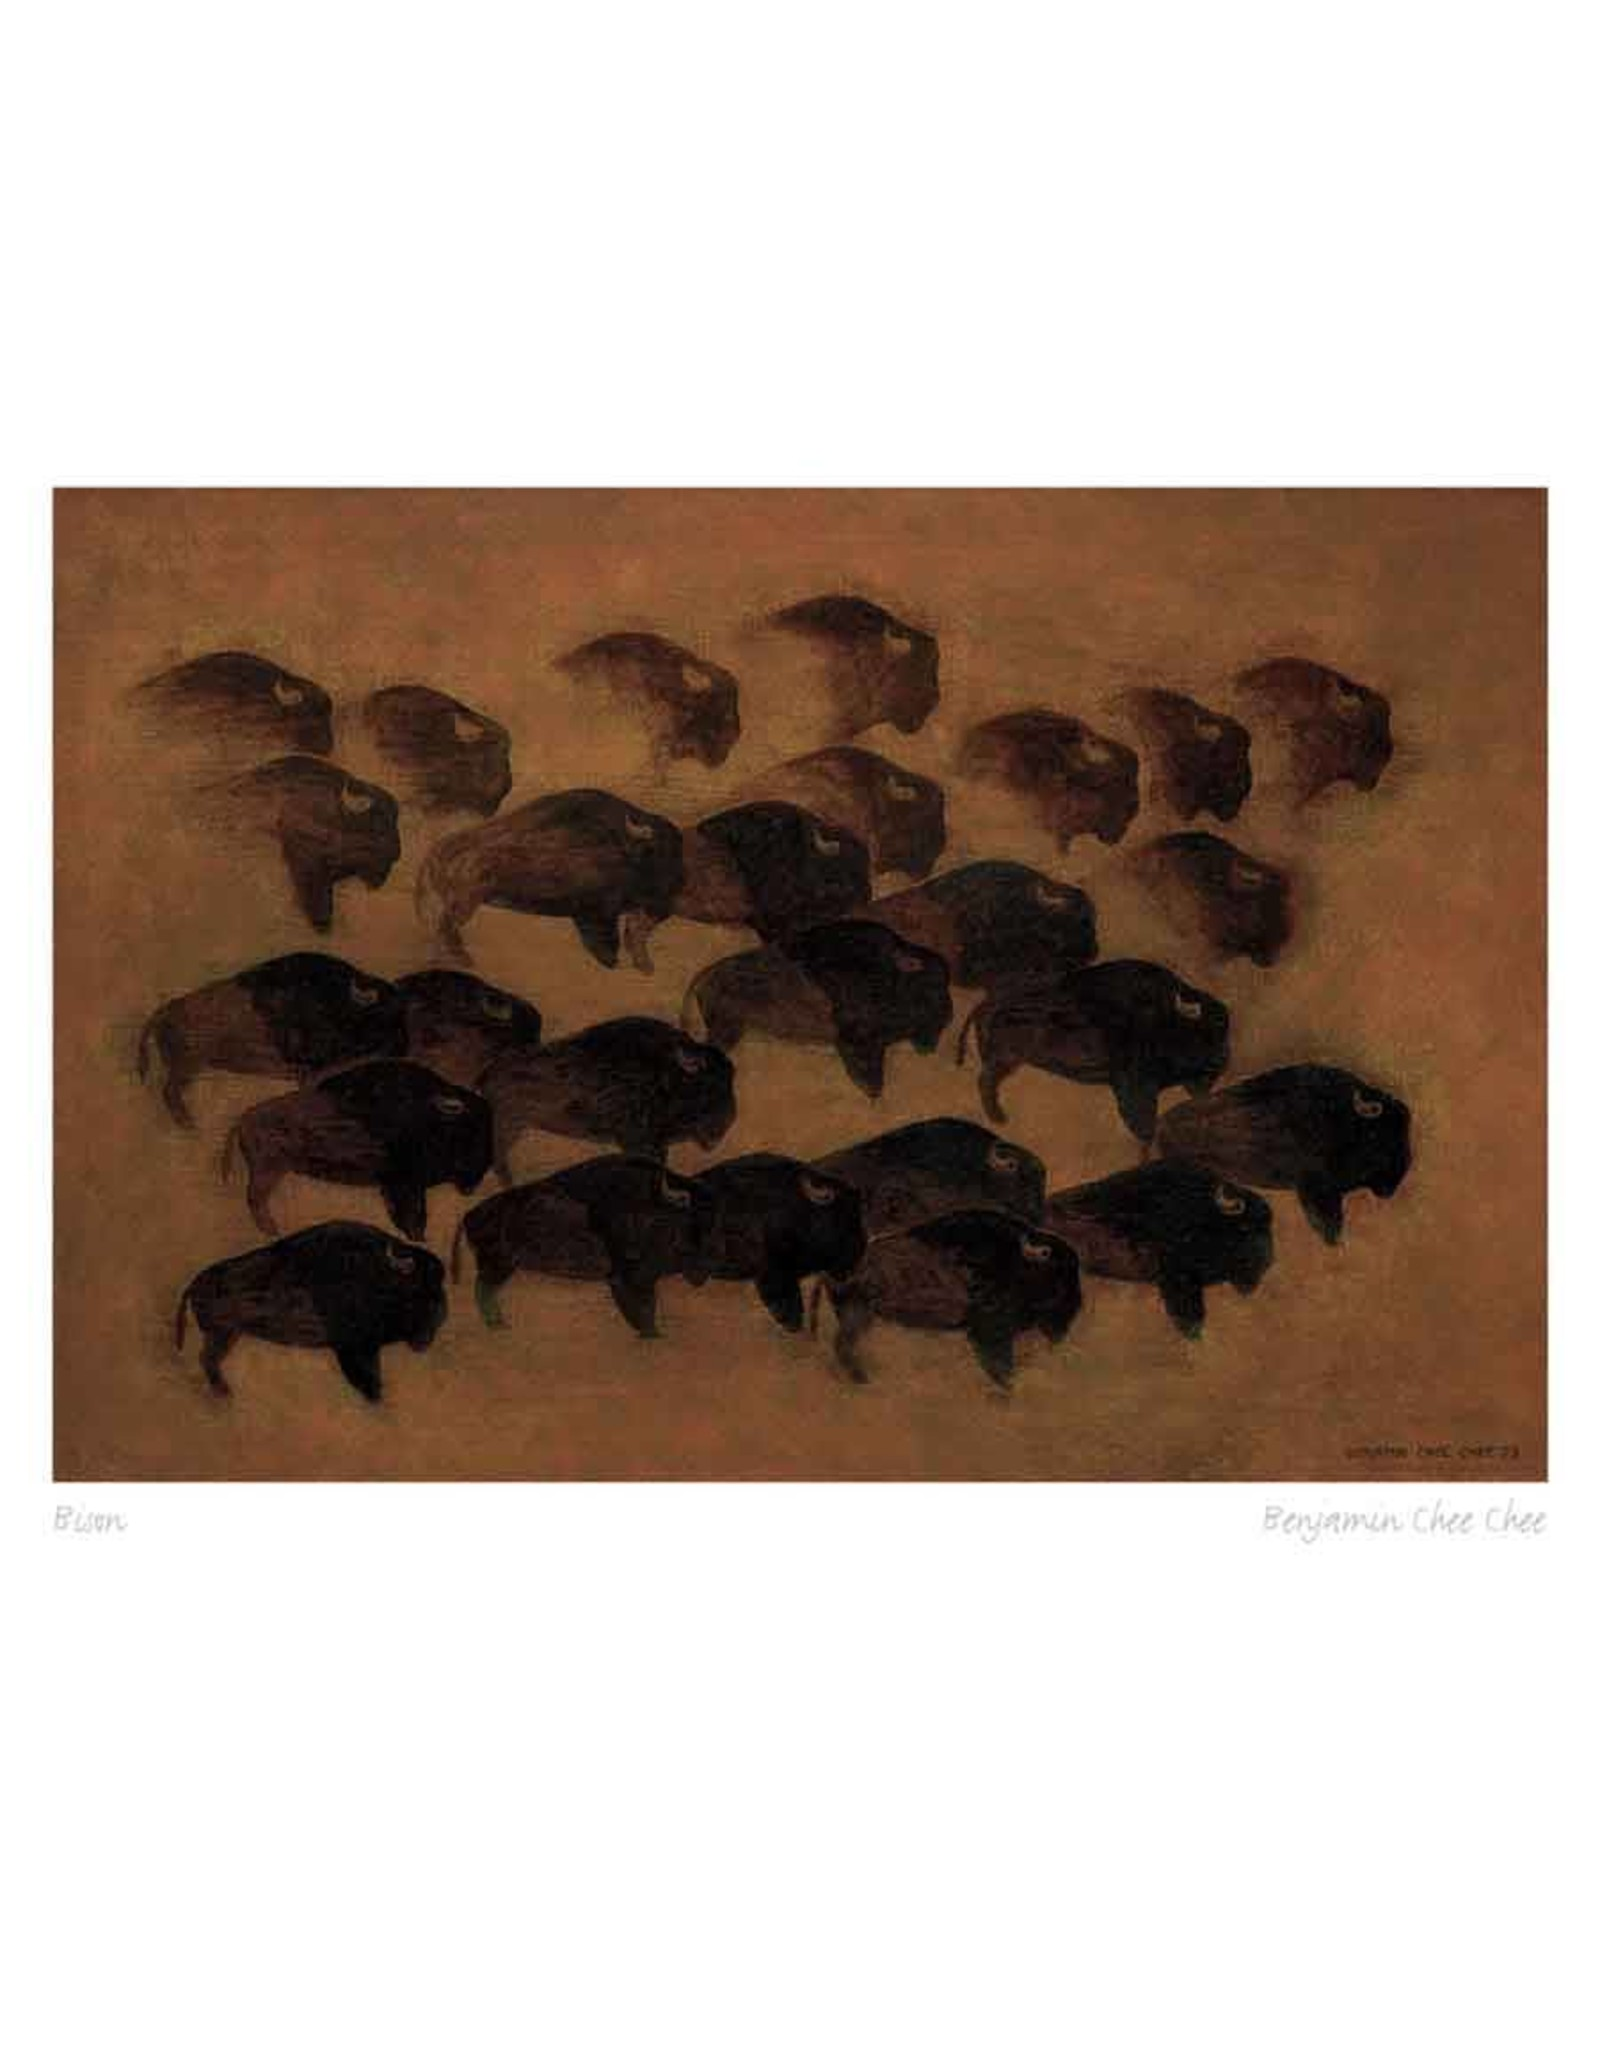 Bison by Benjamin Chee Chee Matted